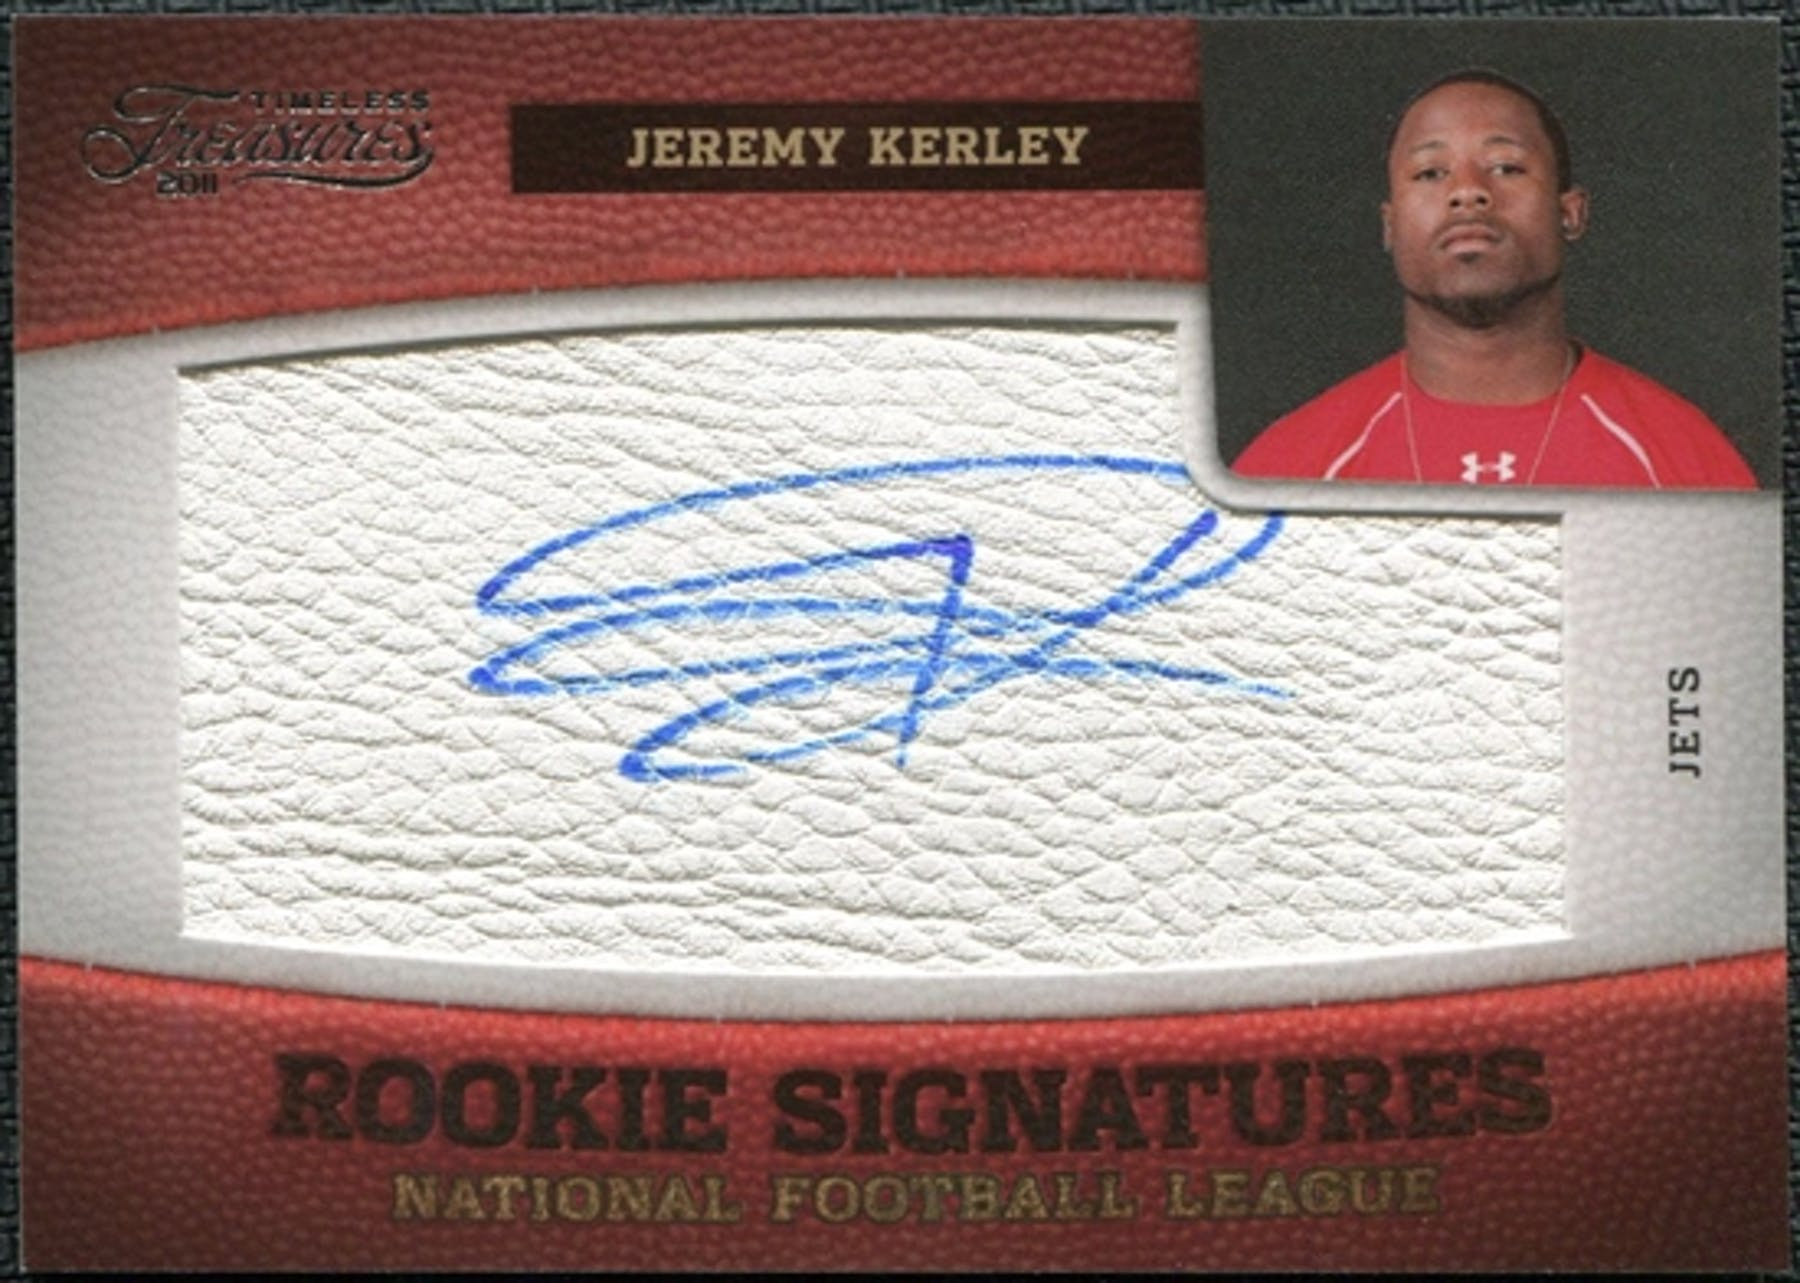 James kerley single